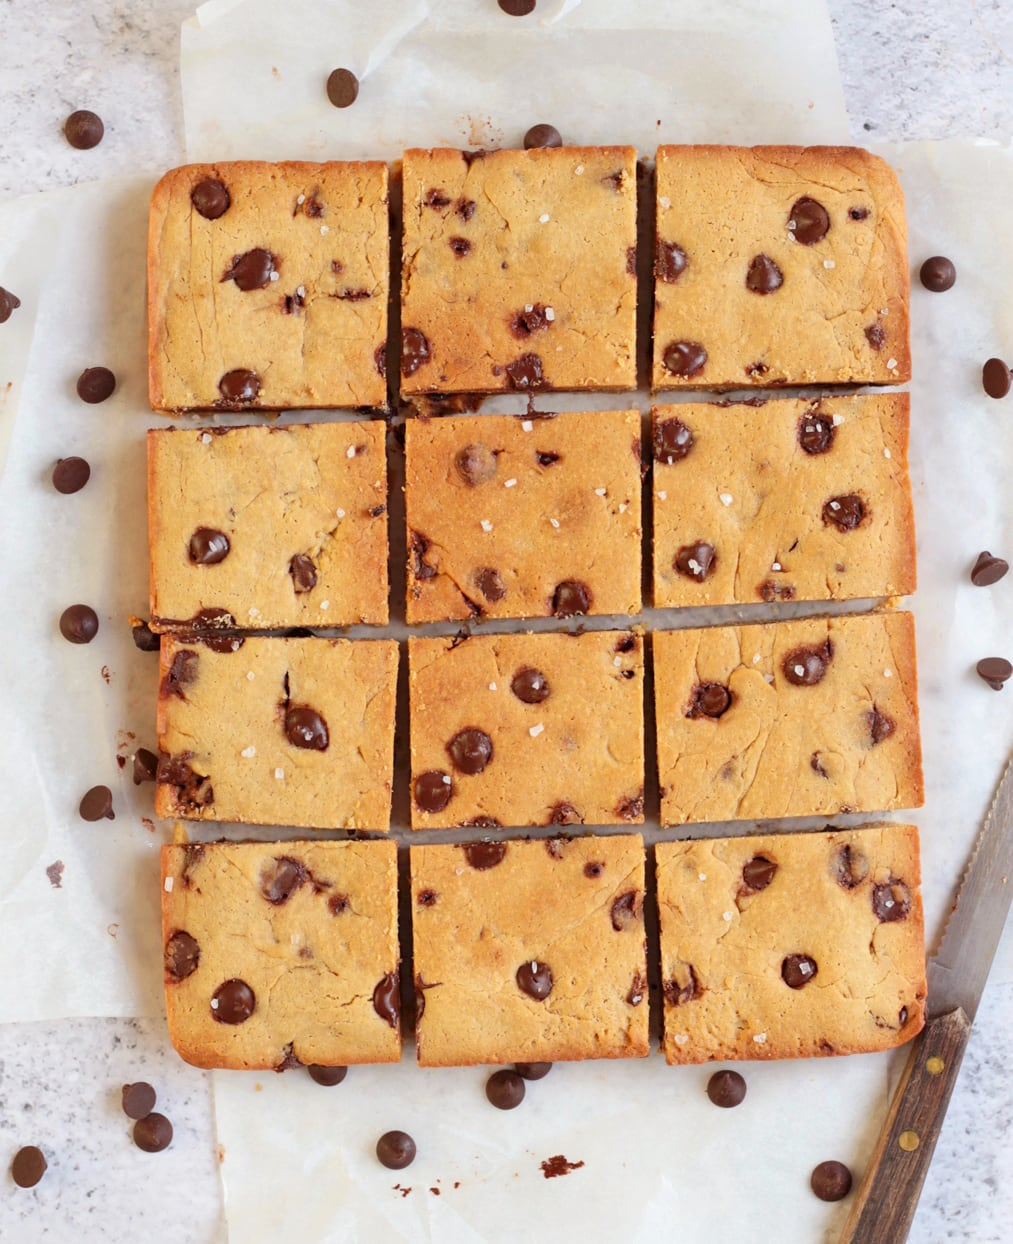 12 sliced Blondies squares shot from above.